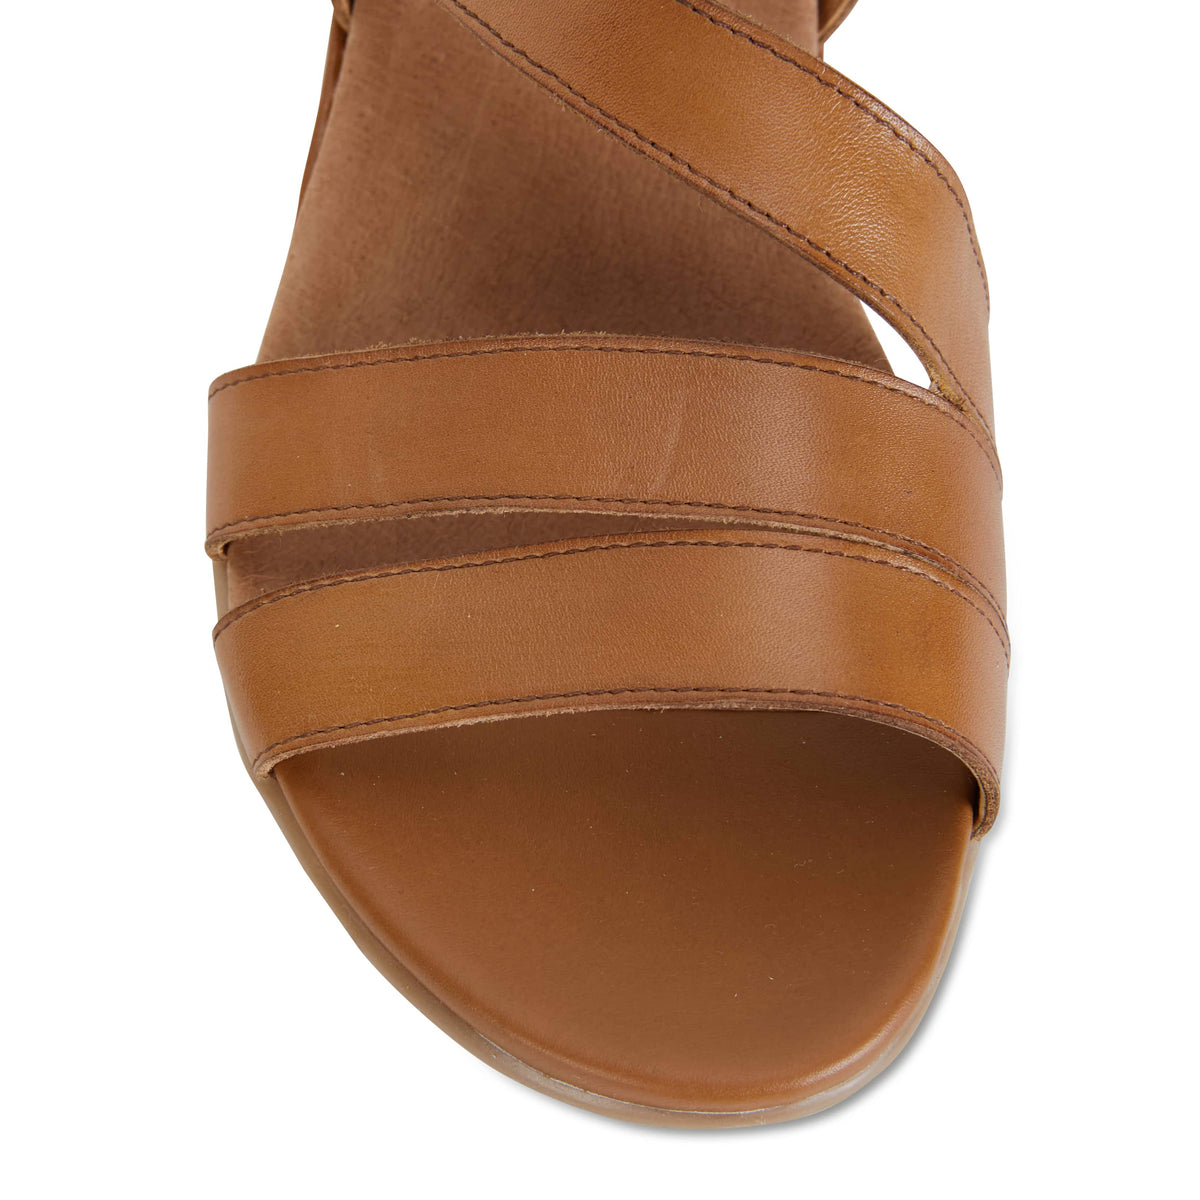 Cisco Sandal in Cognac Leather